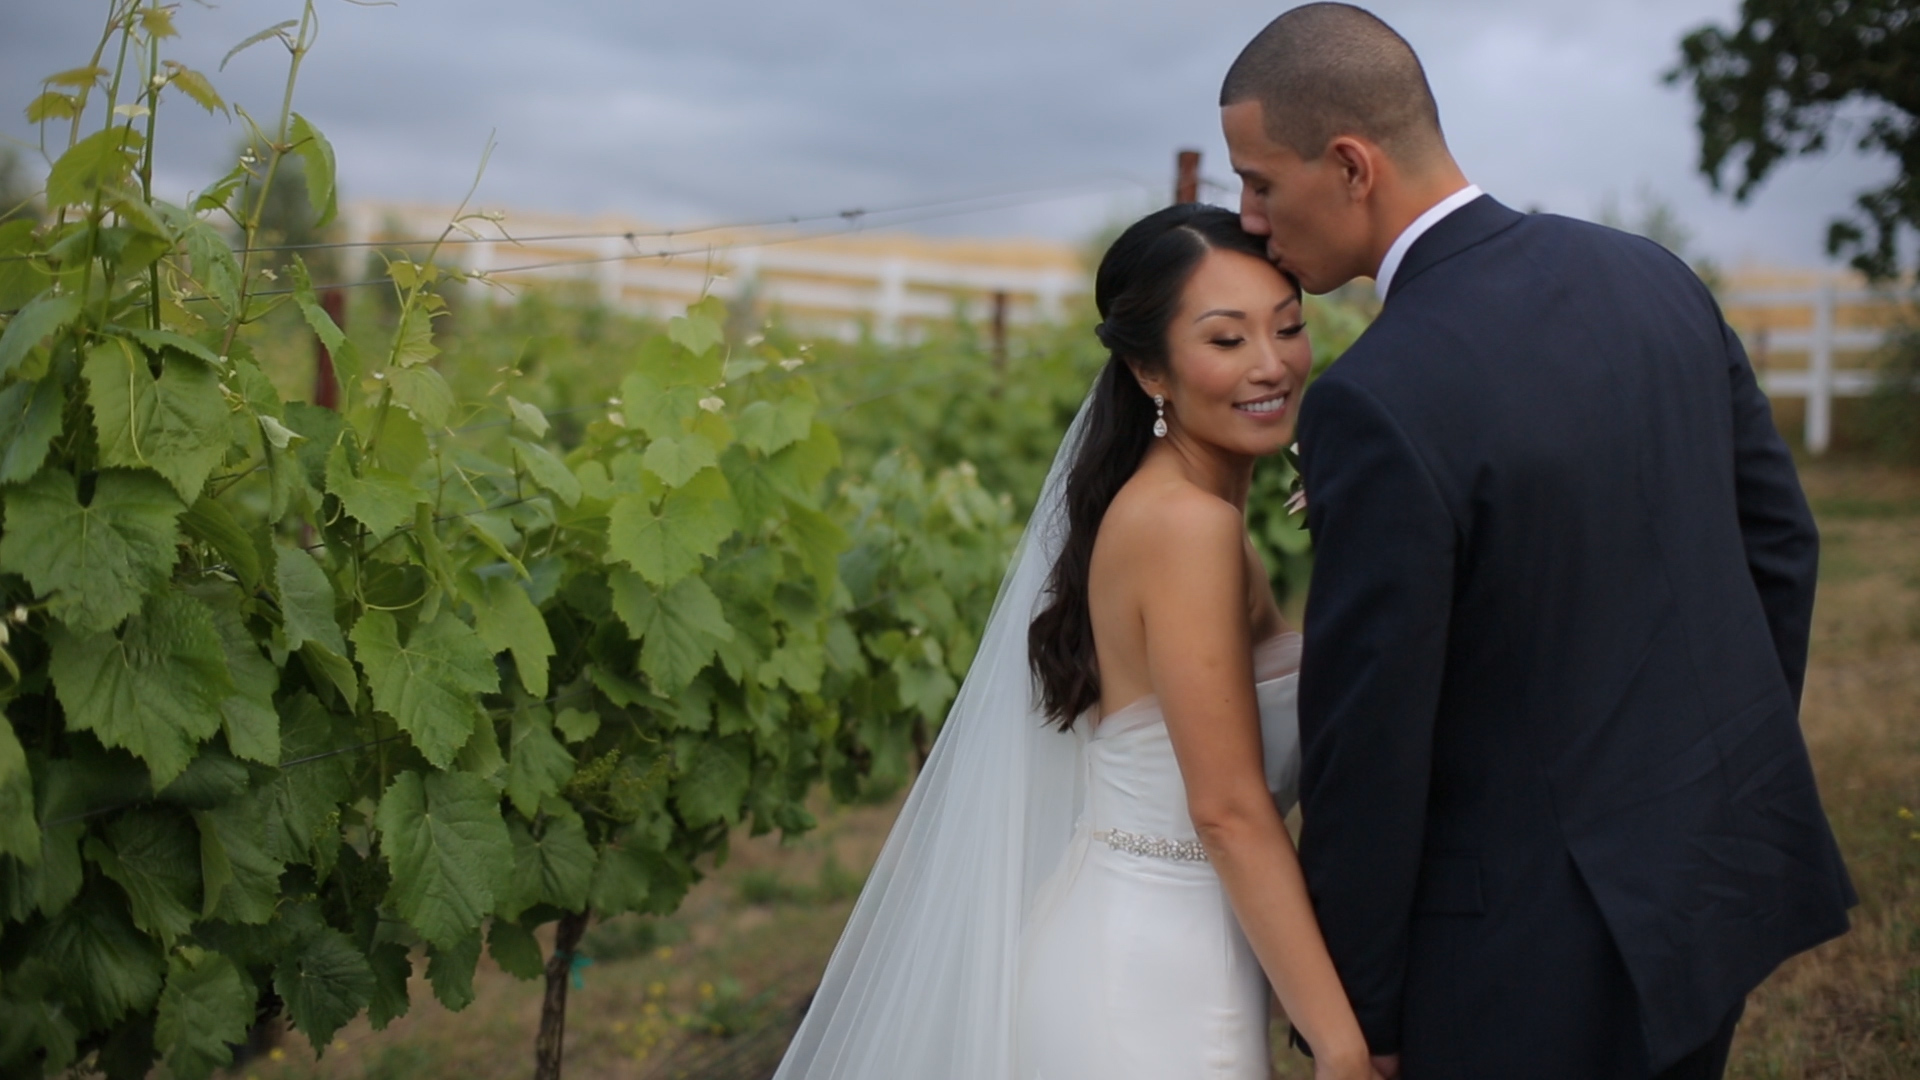 Anna + Jorge | Napa, California | The Meritage Resort and Spa